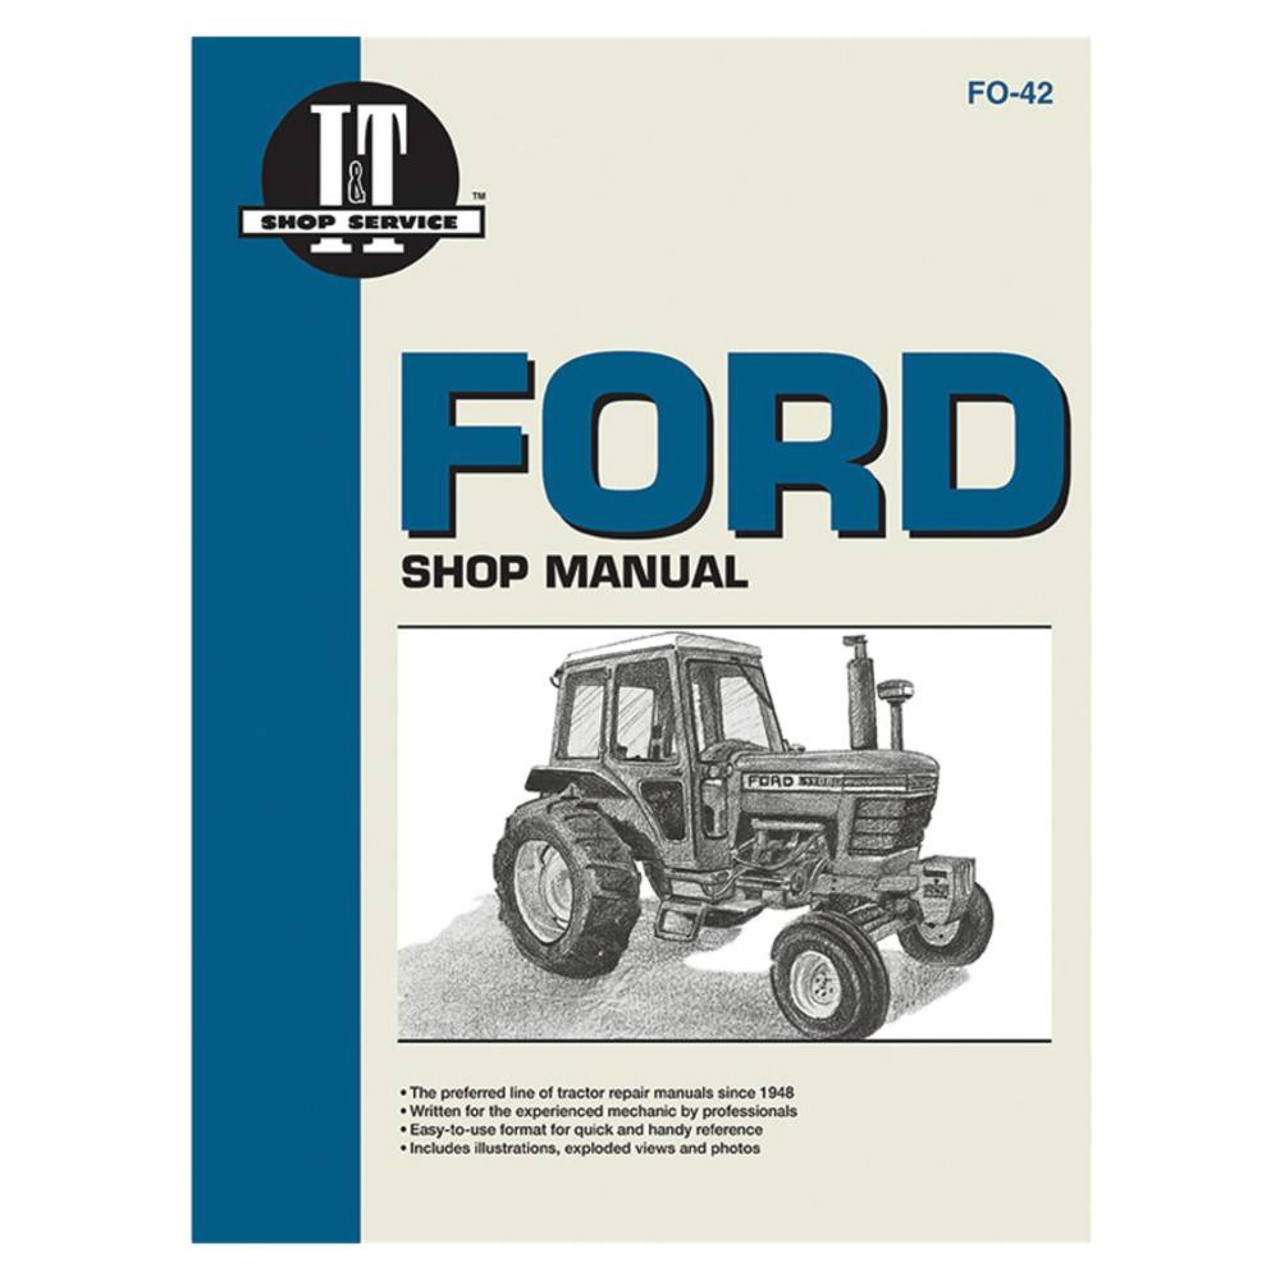 small resolution of service manual ford new holland tractor fo 42 5100 5200 5600 5610d3d71ba2asa5oz cloudfront